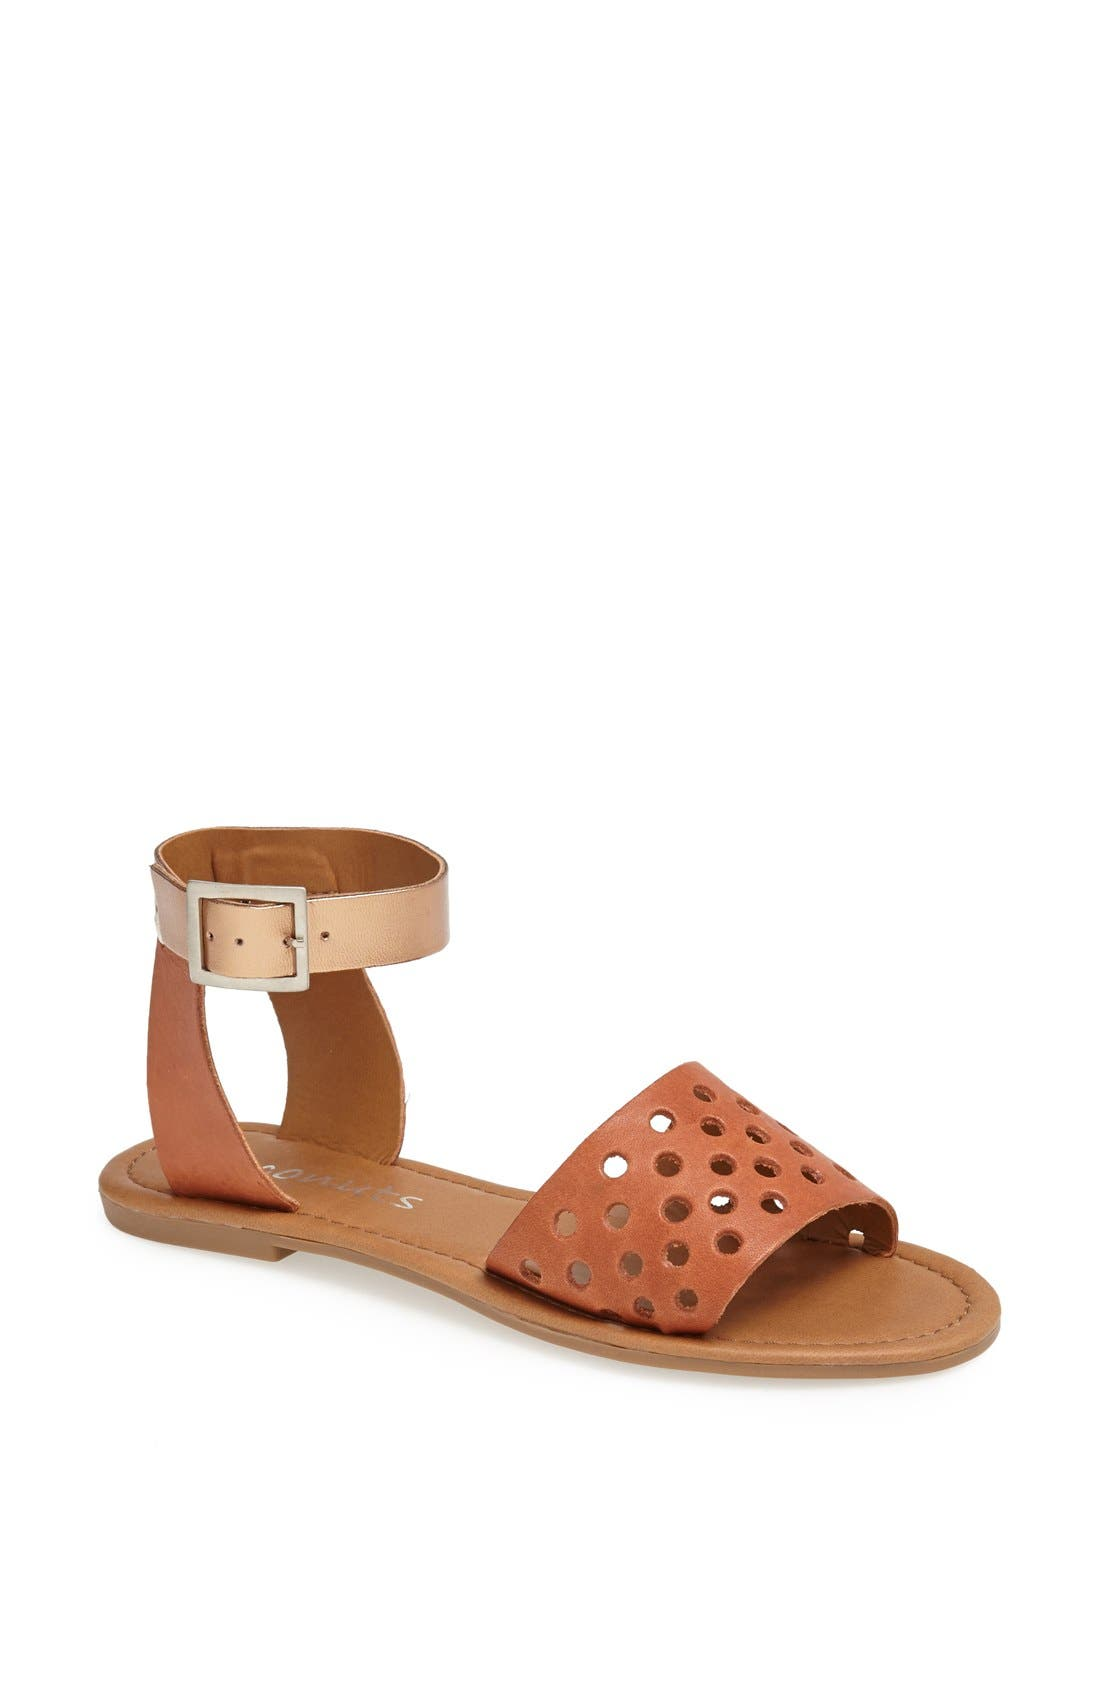 Main Image - Coconuts by Matisse 'All About' Perforated Leather Flat Sandal